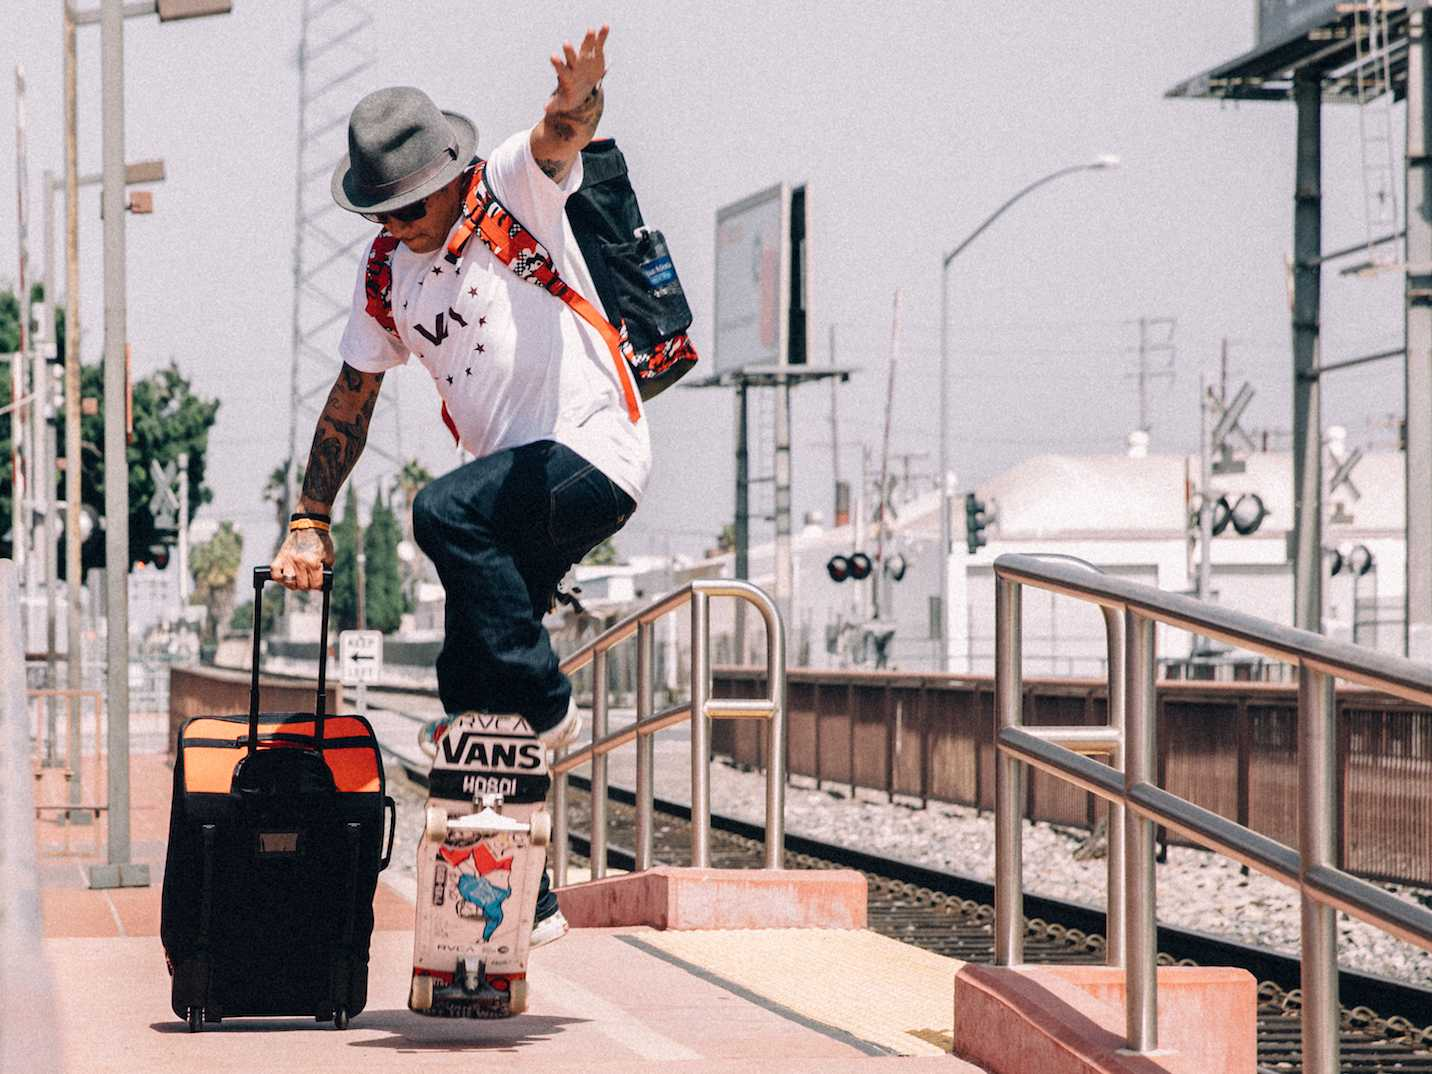 HEX Releases Capsule Collection with Skateboarder Christian Hosoi